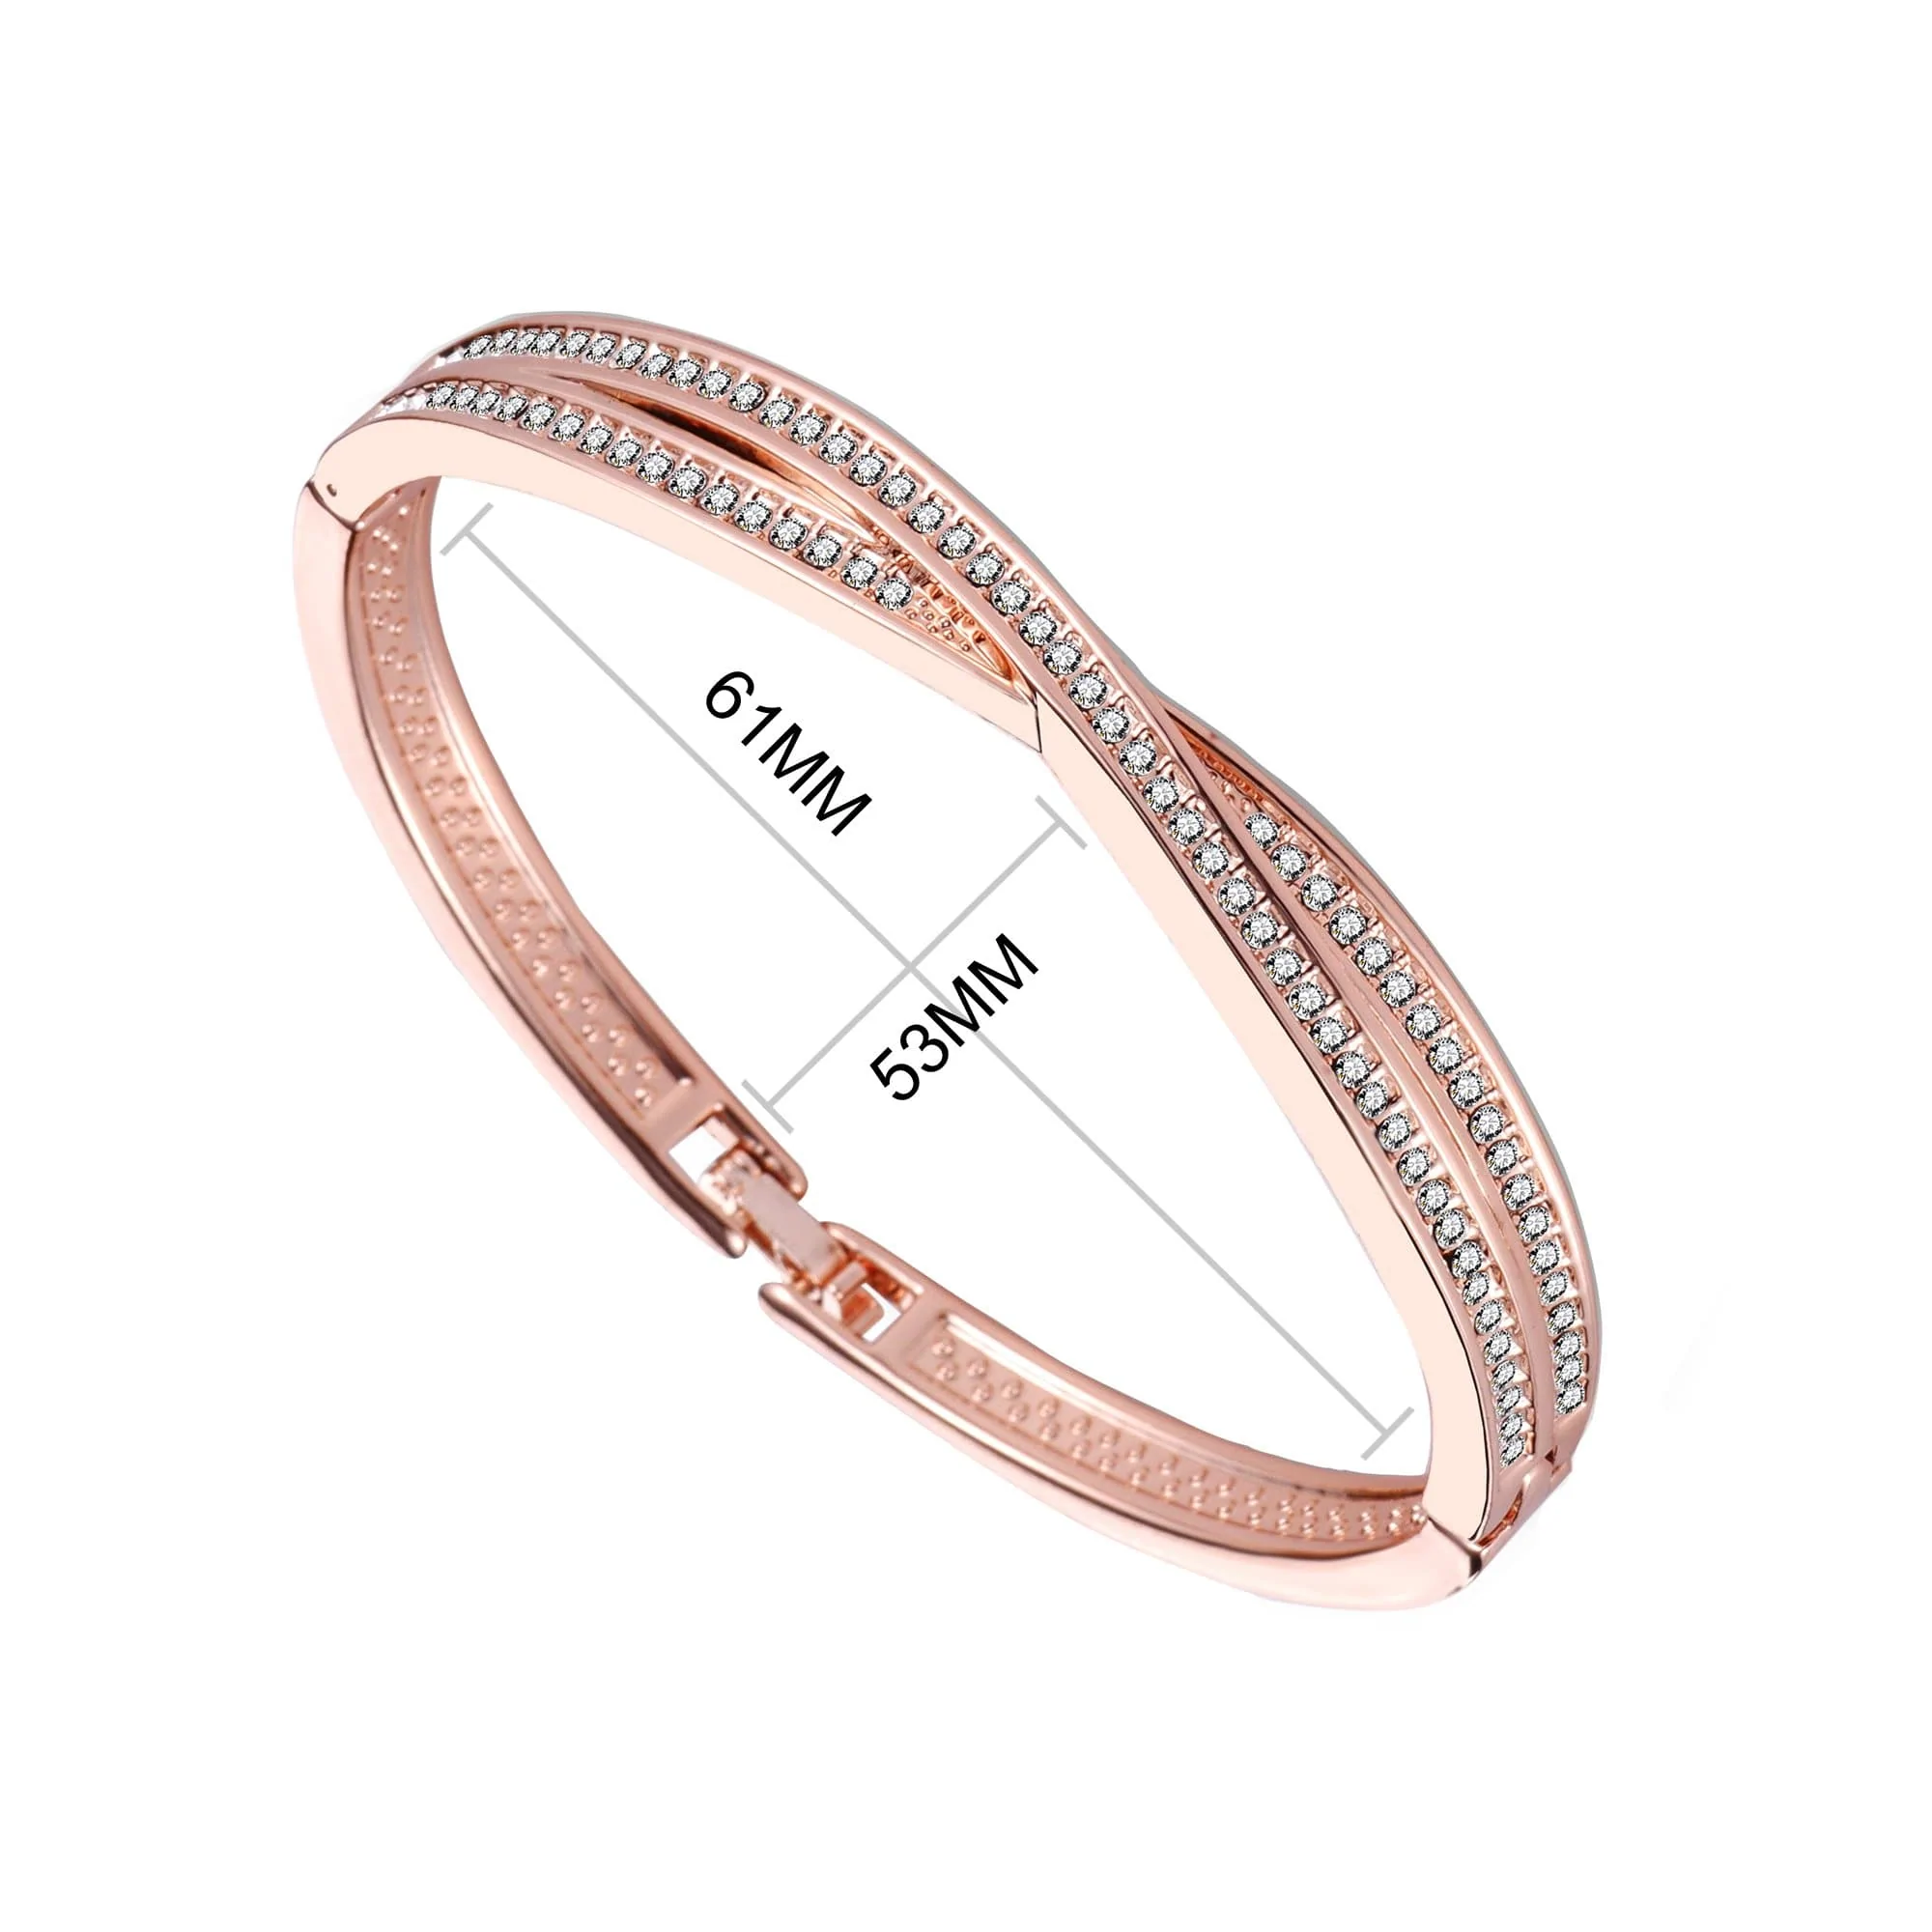 Details zu Rose Gold Crossover Bangle Created with Swarovski® Crystals by Philip Jones